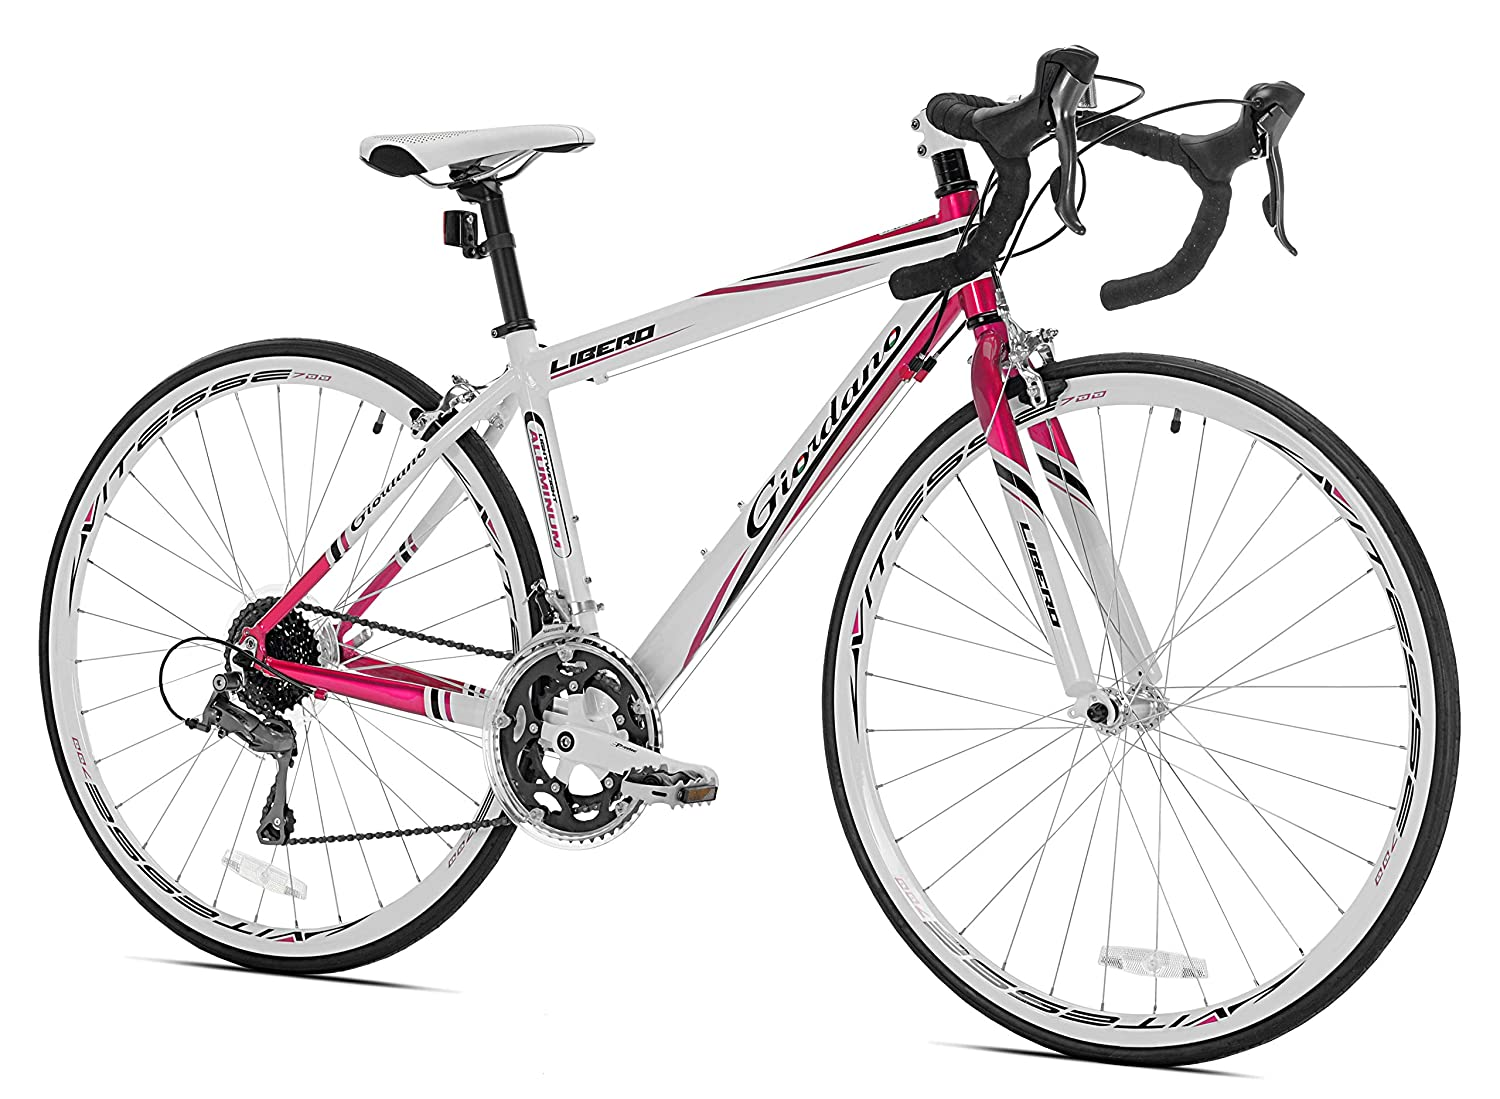 Giordano Women's Libero 1.6 Road Bike